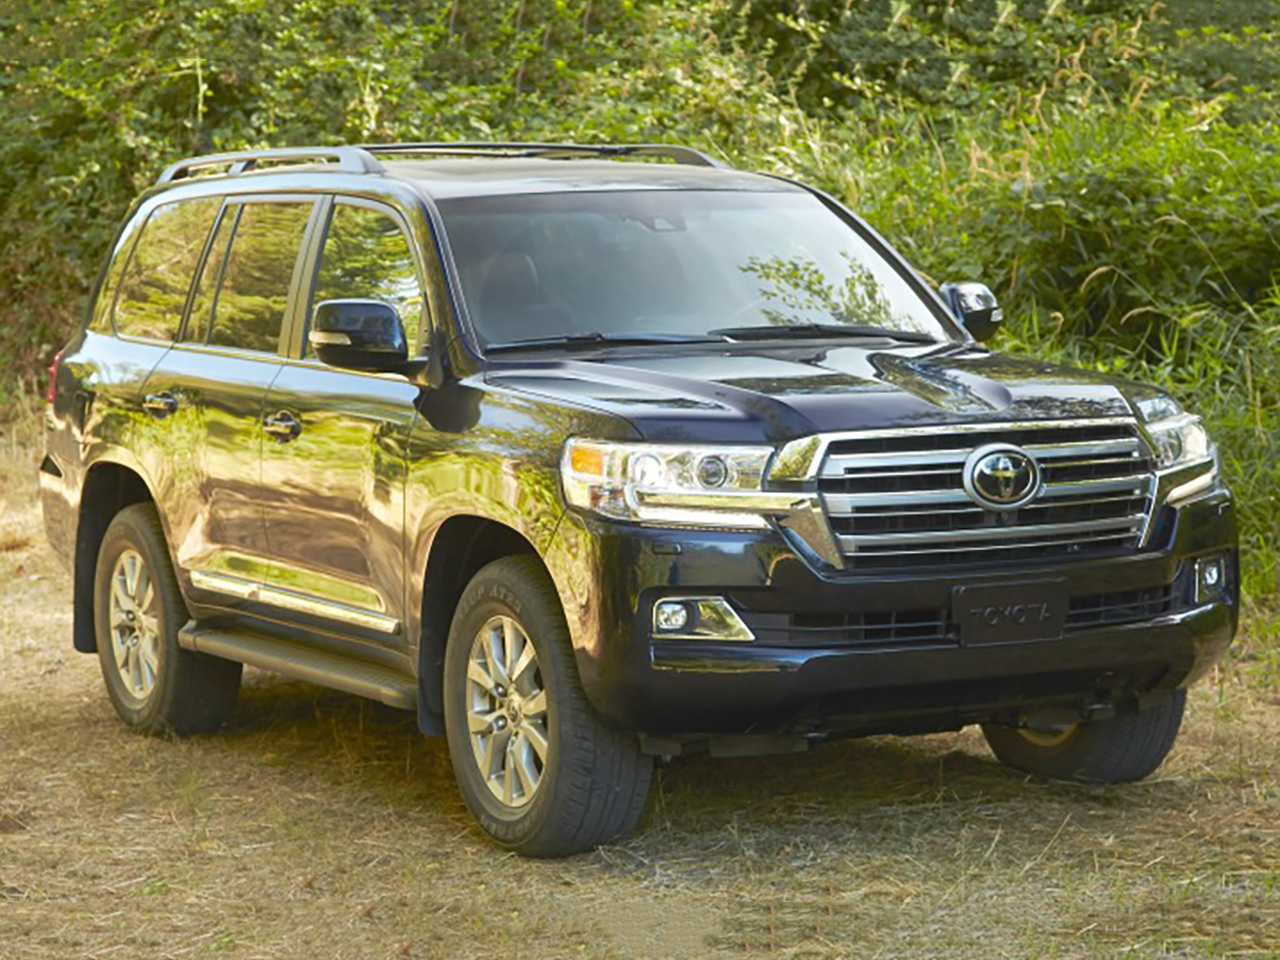 Test Drive A 2016 Toyota Land Cruiser at Tustin Toyota in Tustin